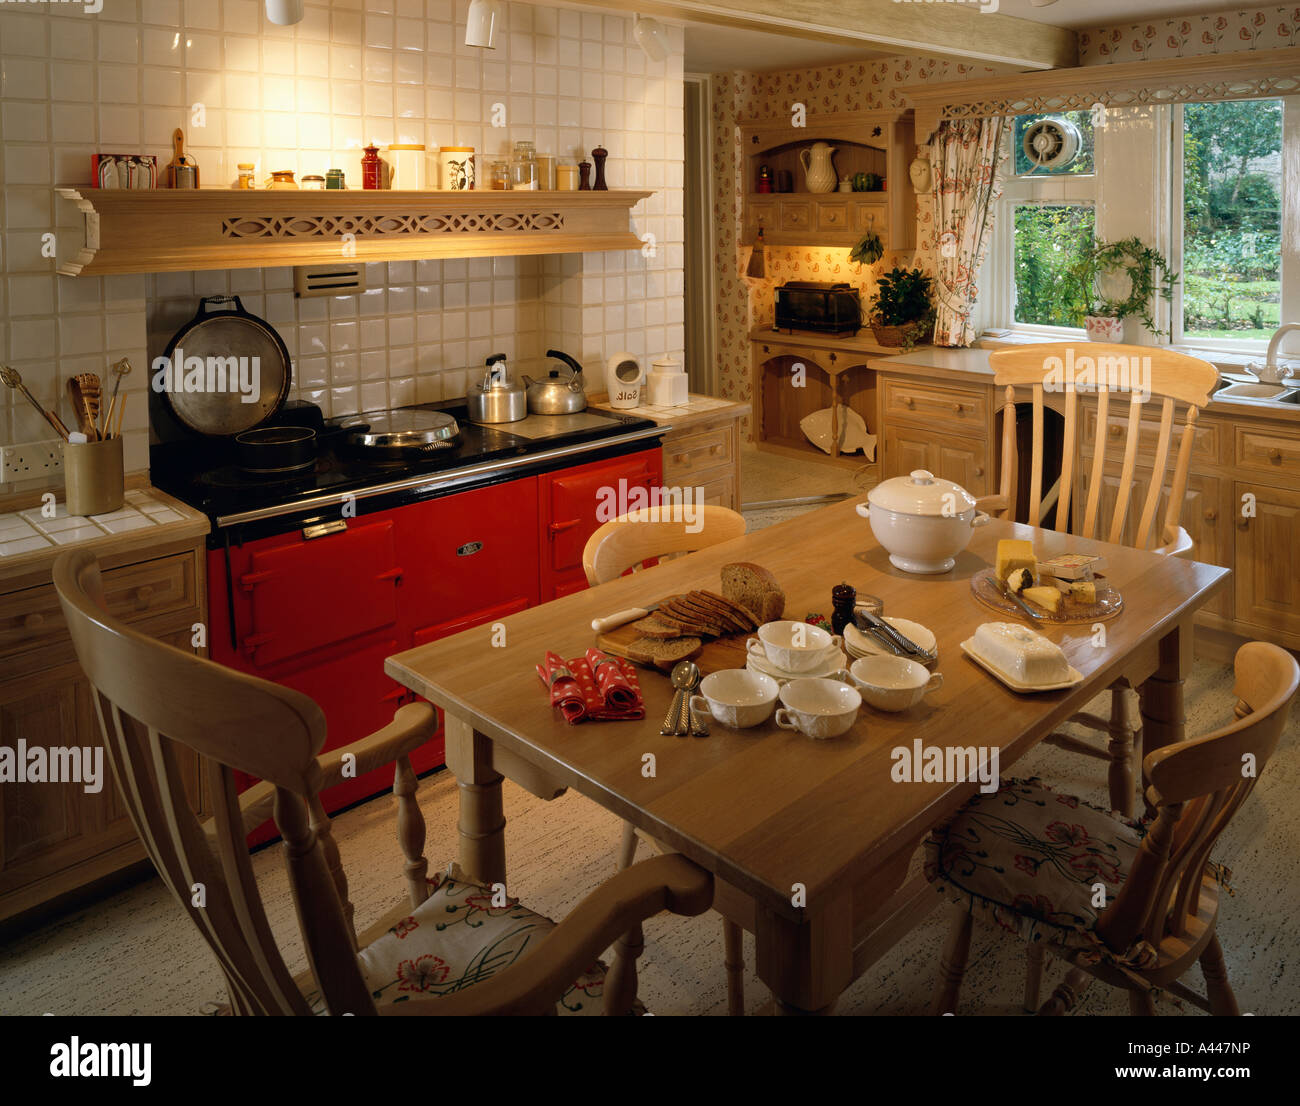 Country Kitchen Dining Table Red Aga Oven In Traditional Country Kitchen With Wooden Dining